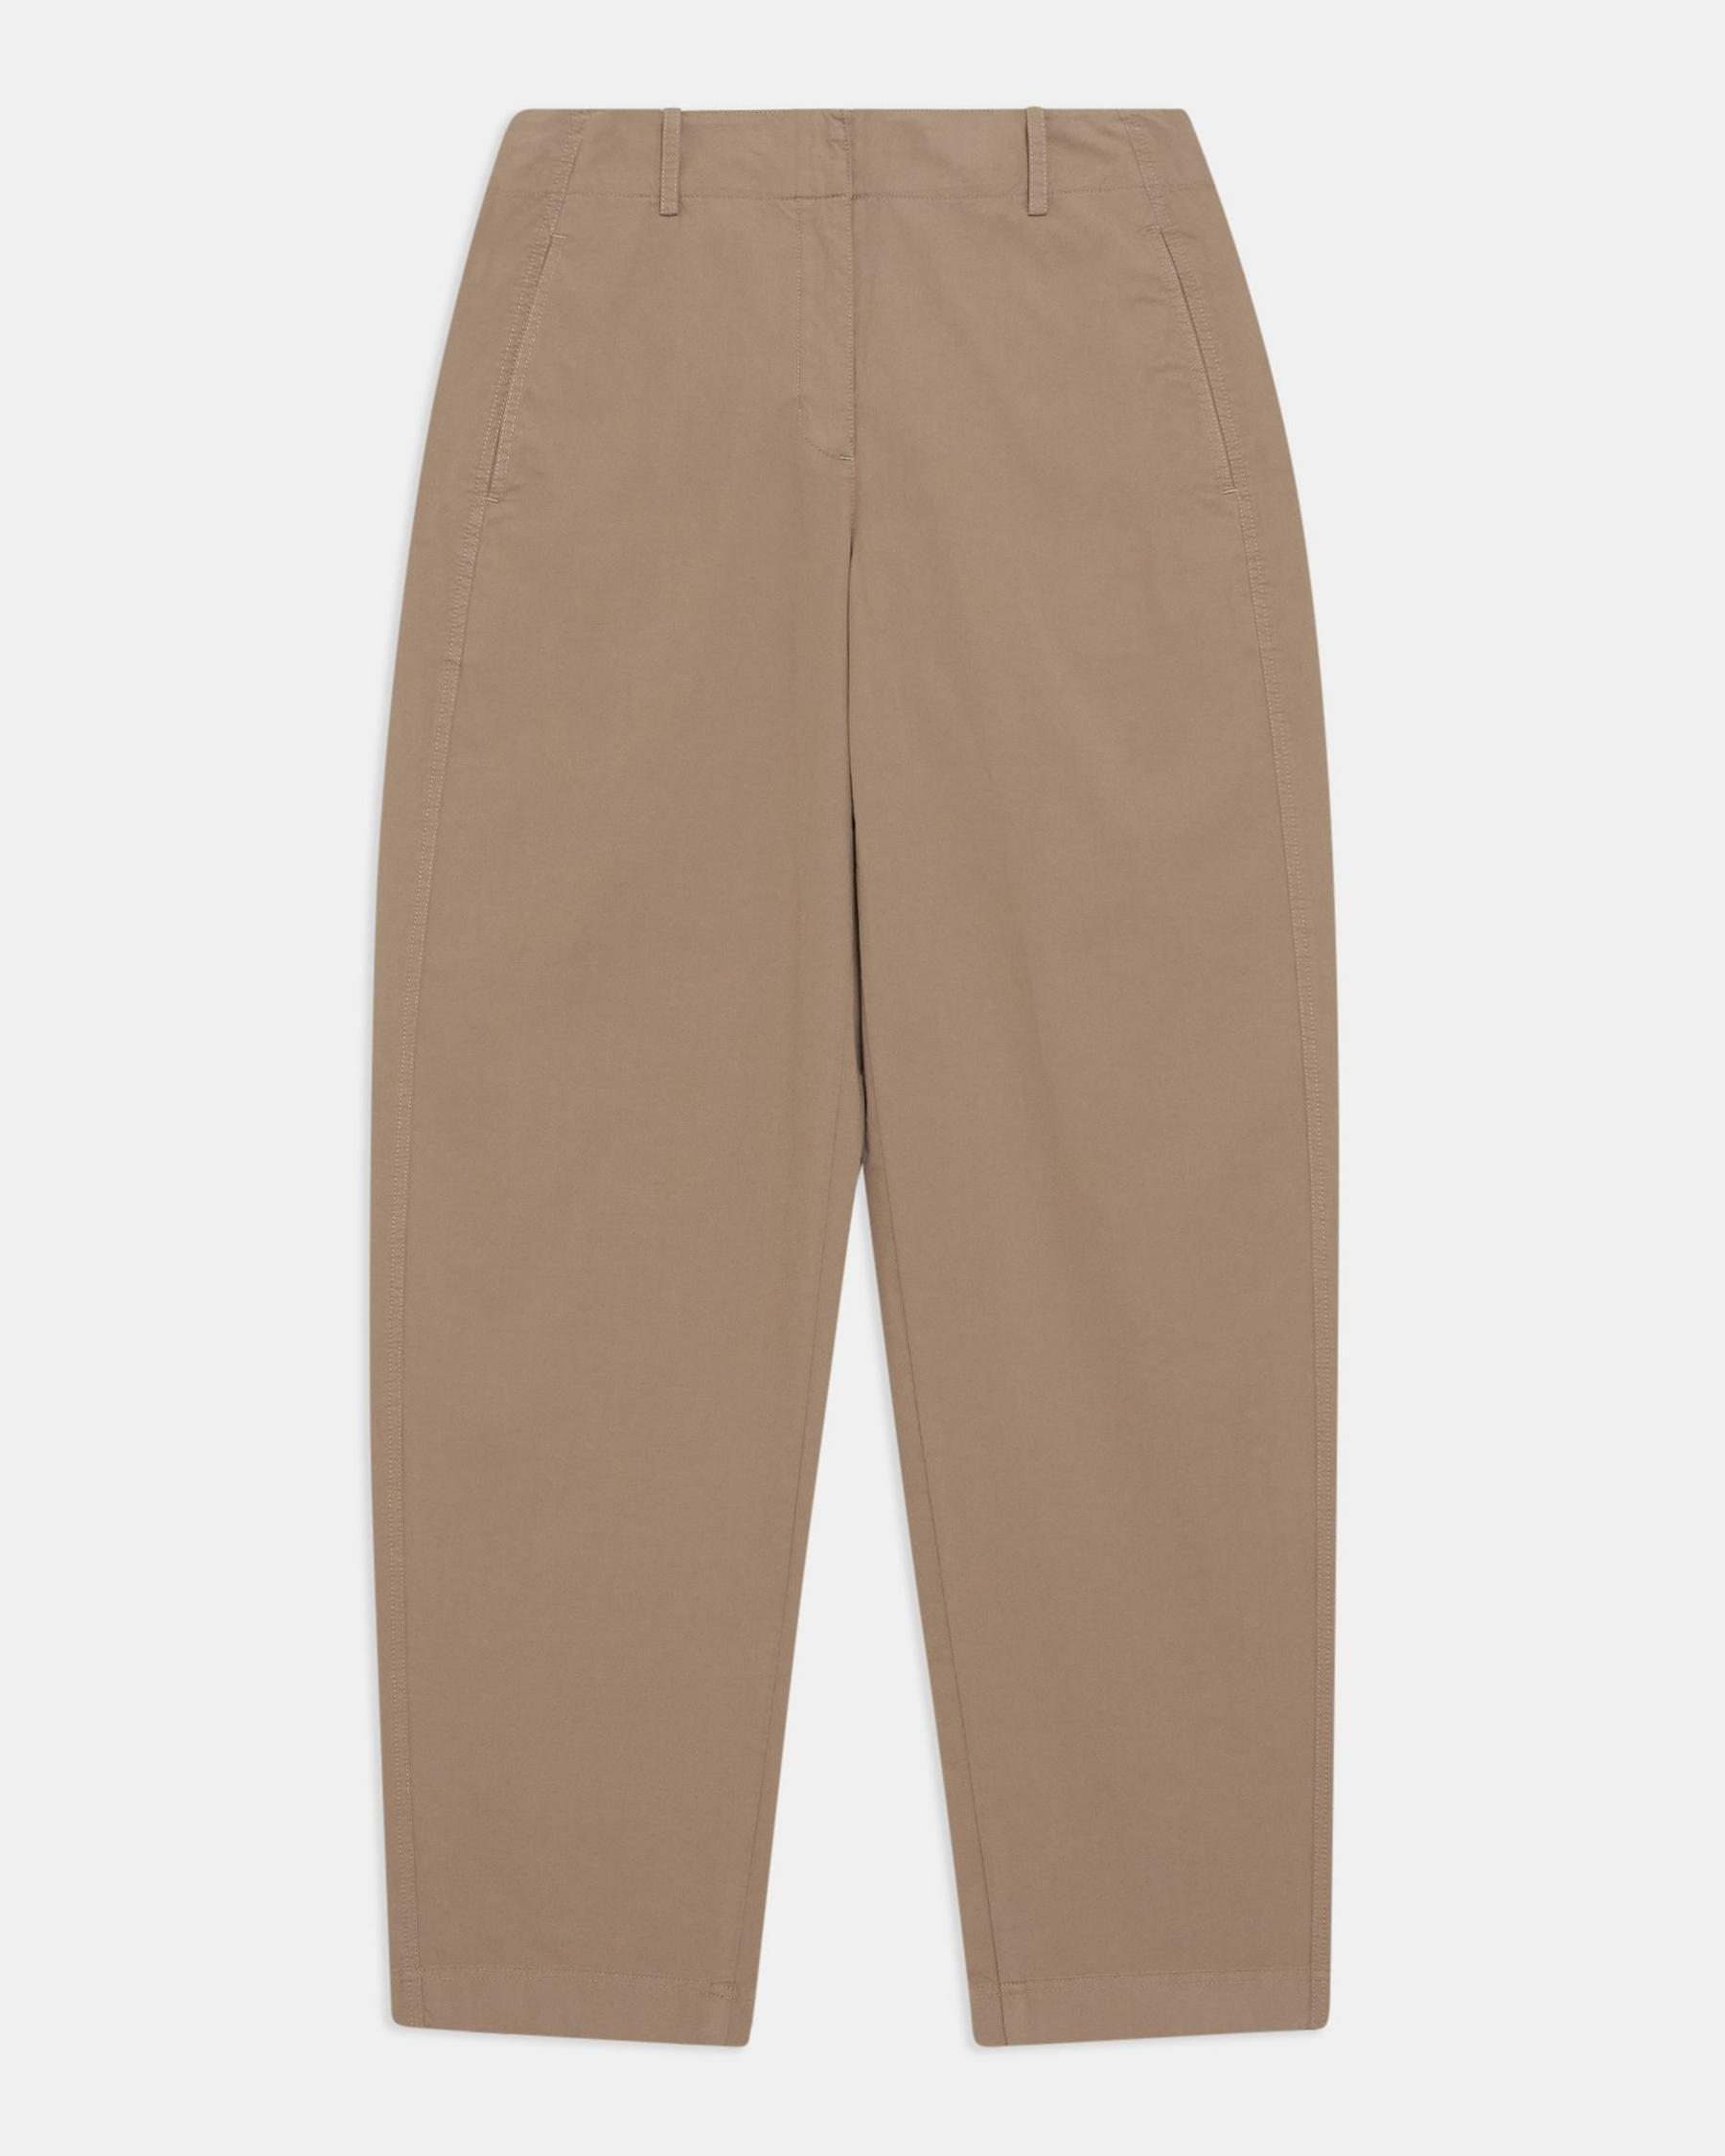 Curve Pant in Garment-Dyed Cotton 5